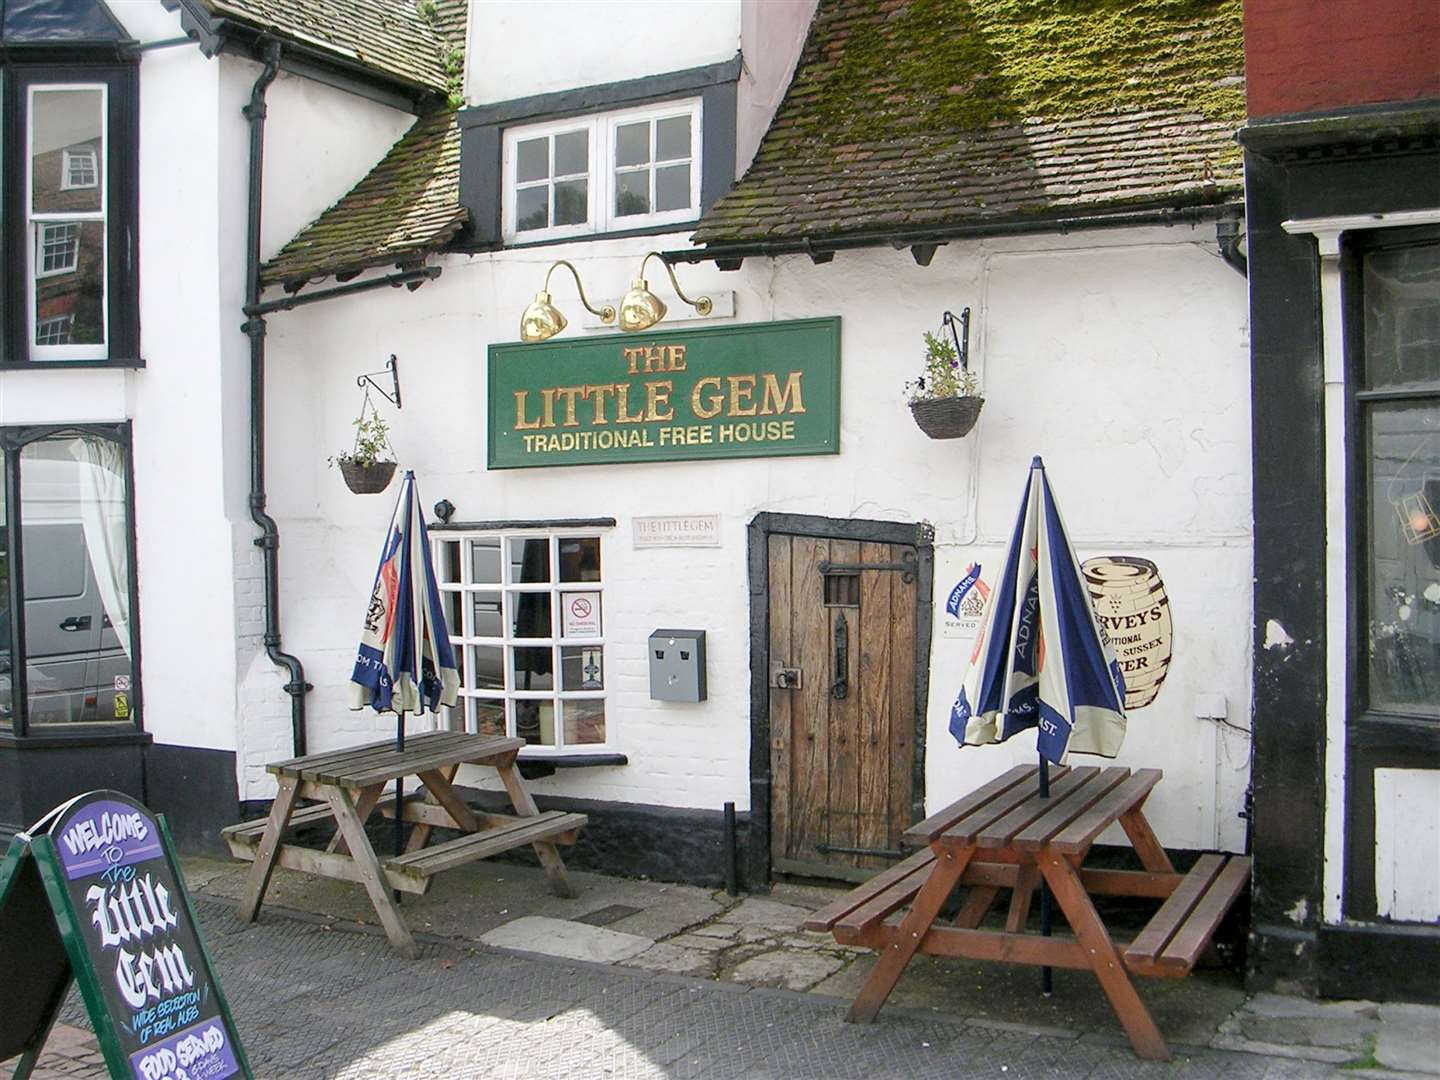 The Little Gem has been bought by Goachers